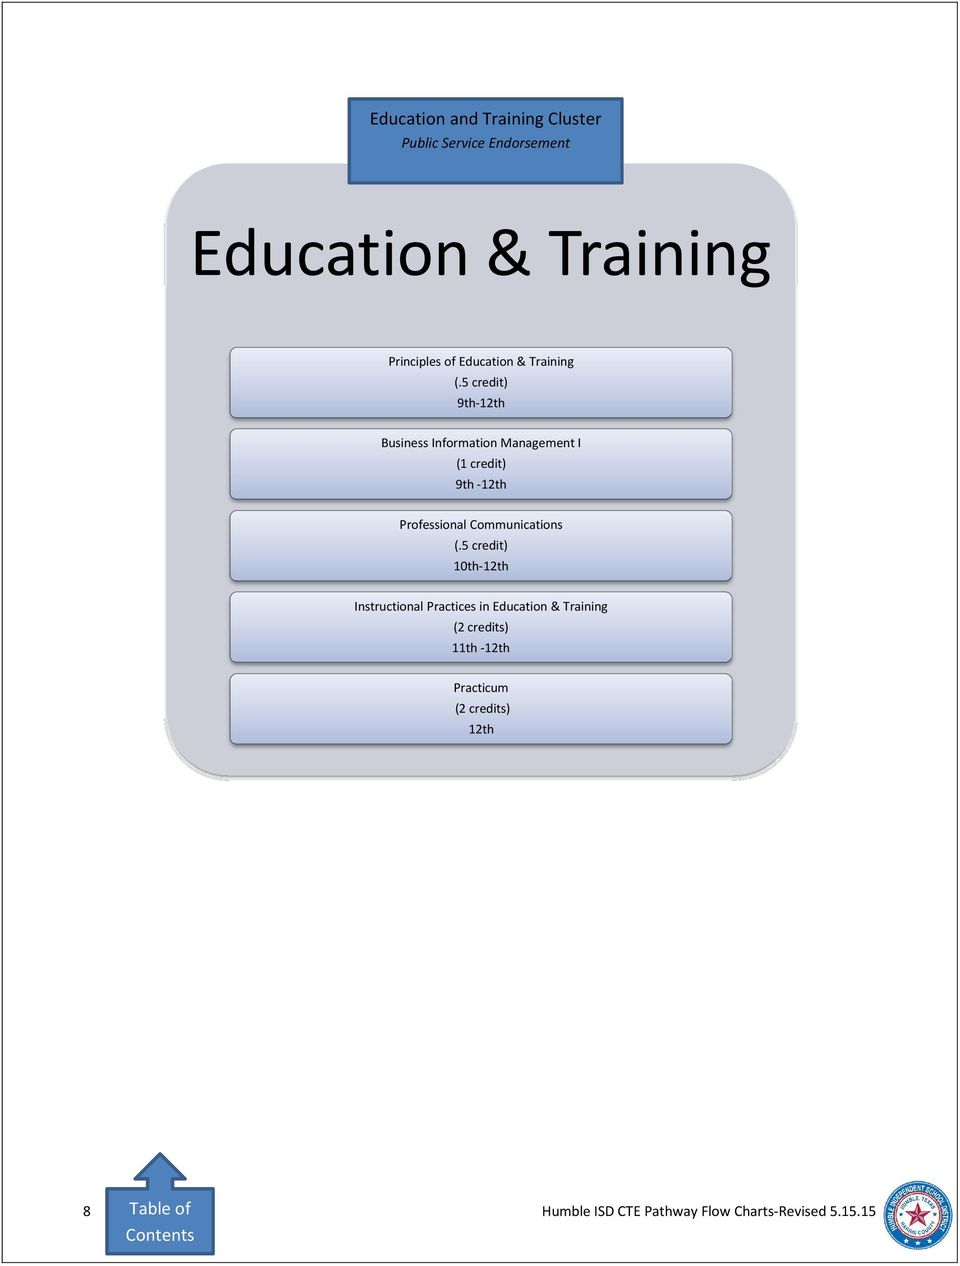 Education & Training 9th- Instructional Practices in